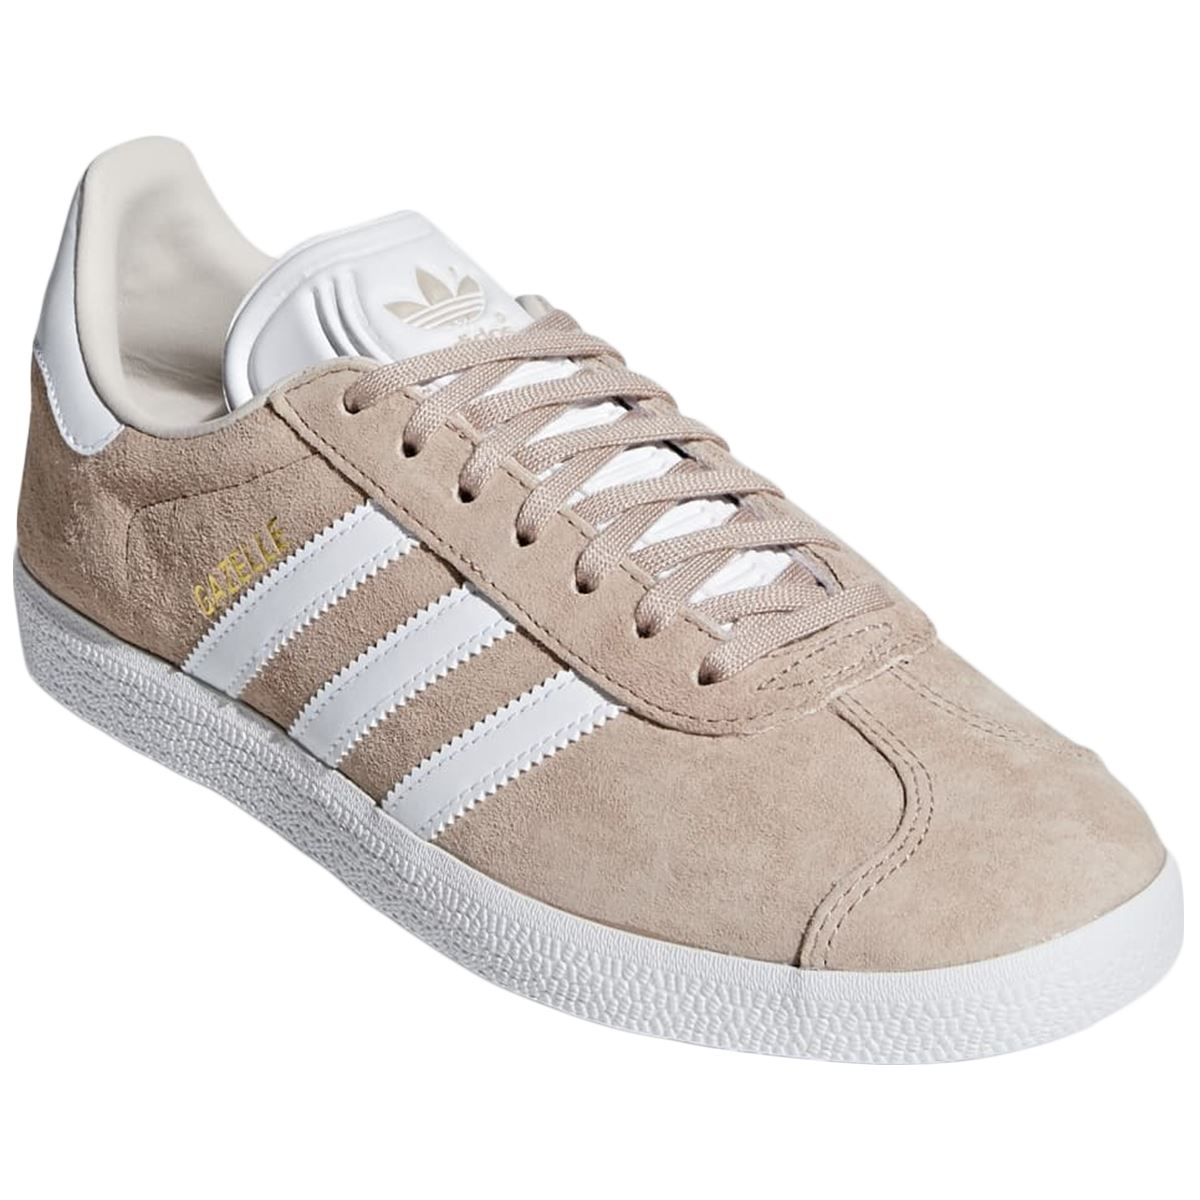 Adidas-Gazelle-Nubuck-Lace-Up-Low-Top-Casual-